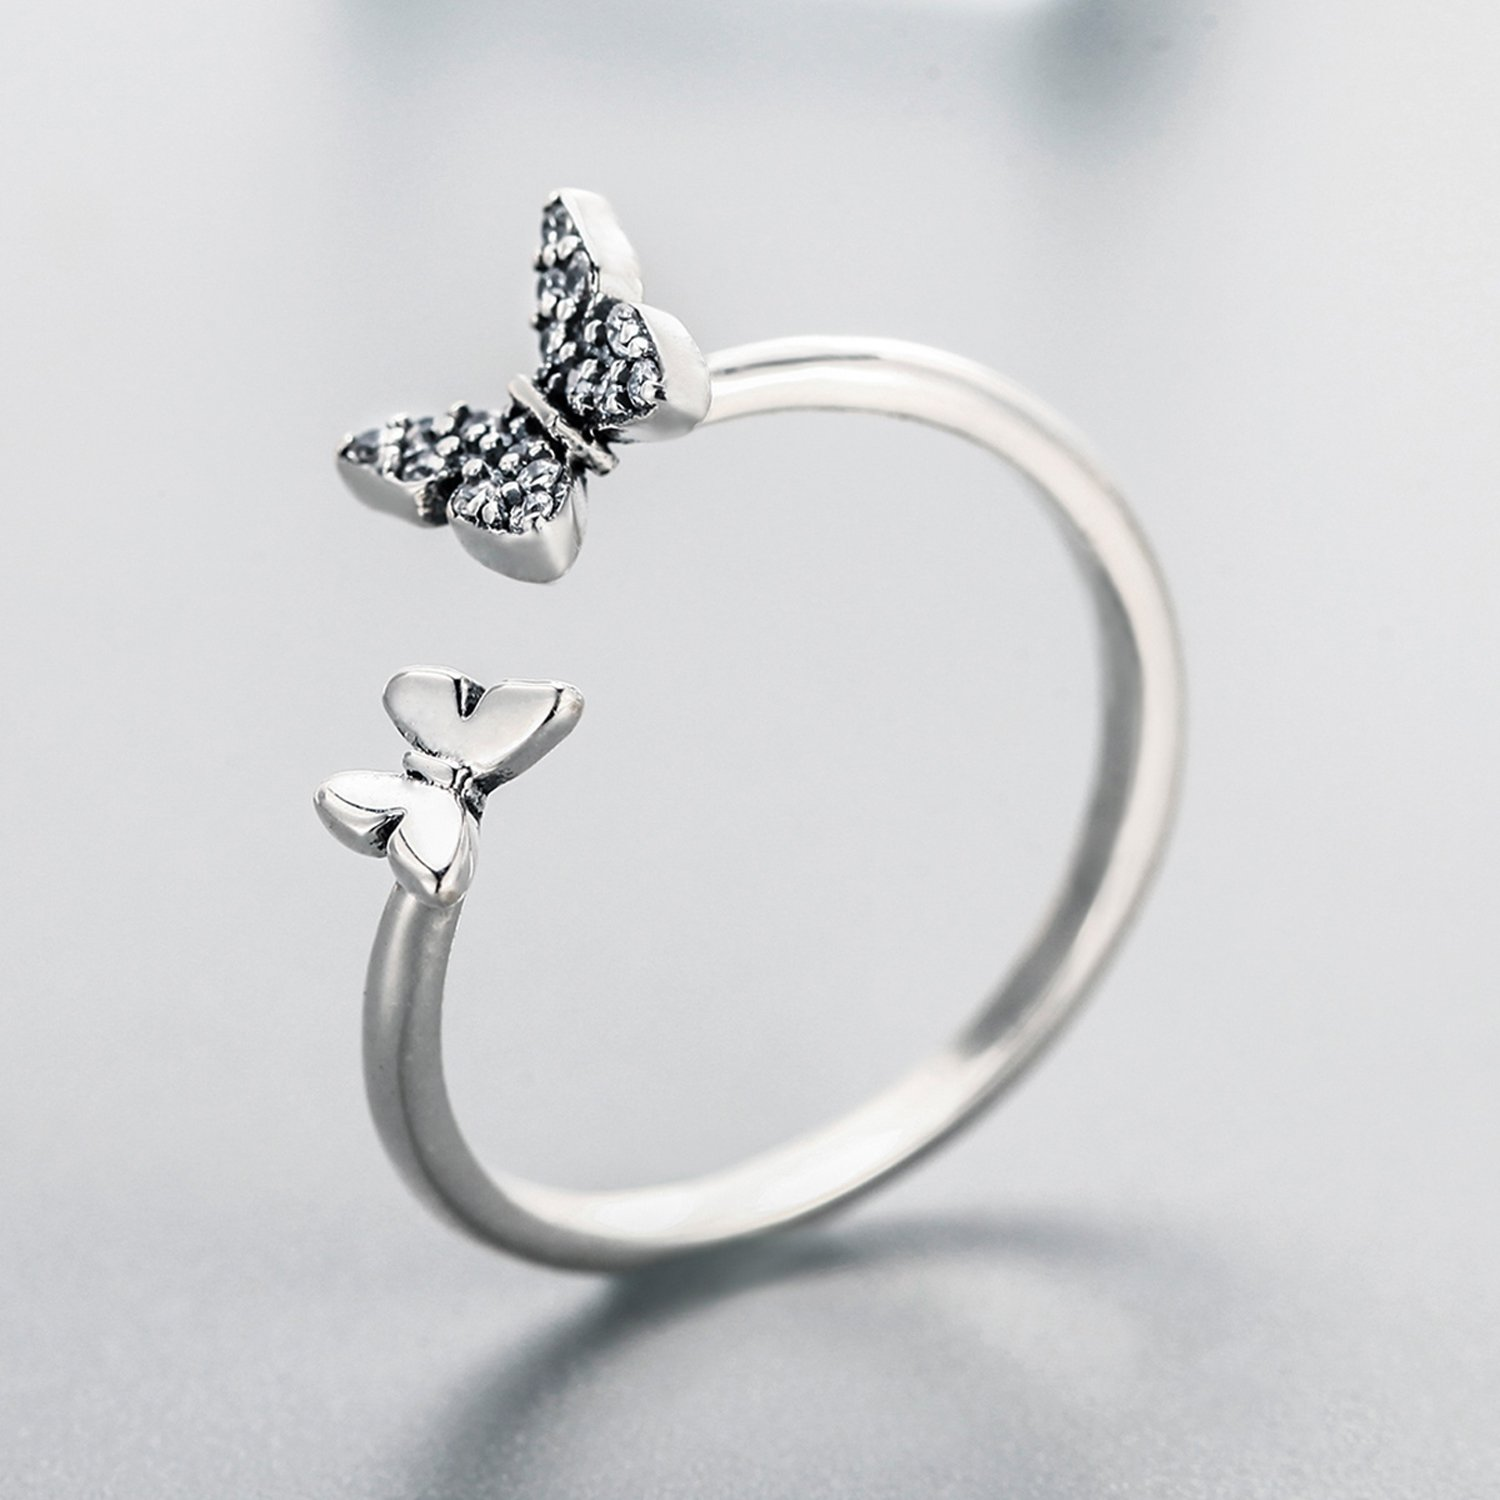 925-Sterling-Silver-Butterfly-White-Birthstone-CZ-Ring-Expandable-Open-Rings-Adjustable-for-Women-Jewelry